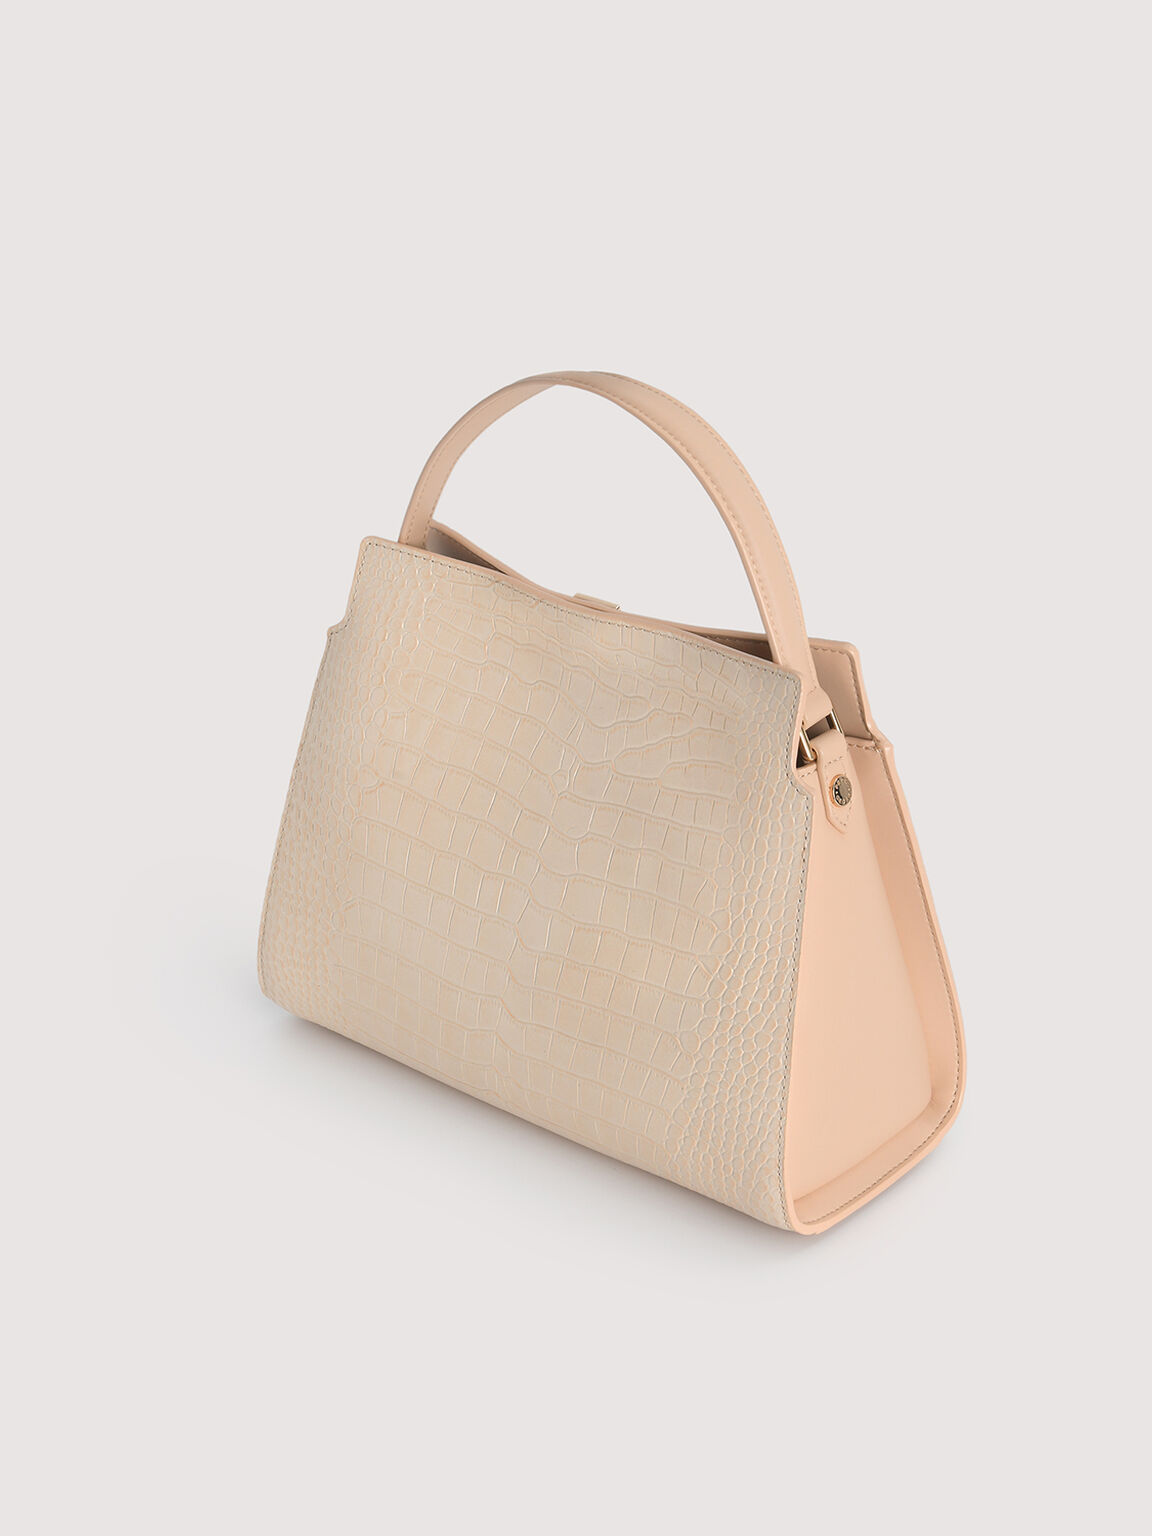 Embossed Leather Top Handle, Nude, hi-res